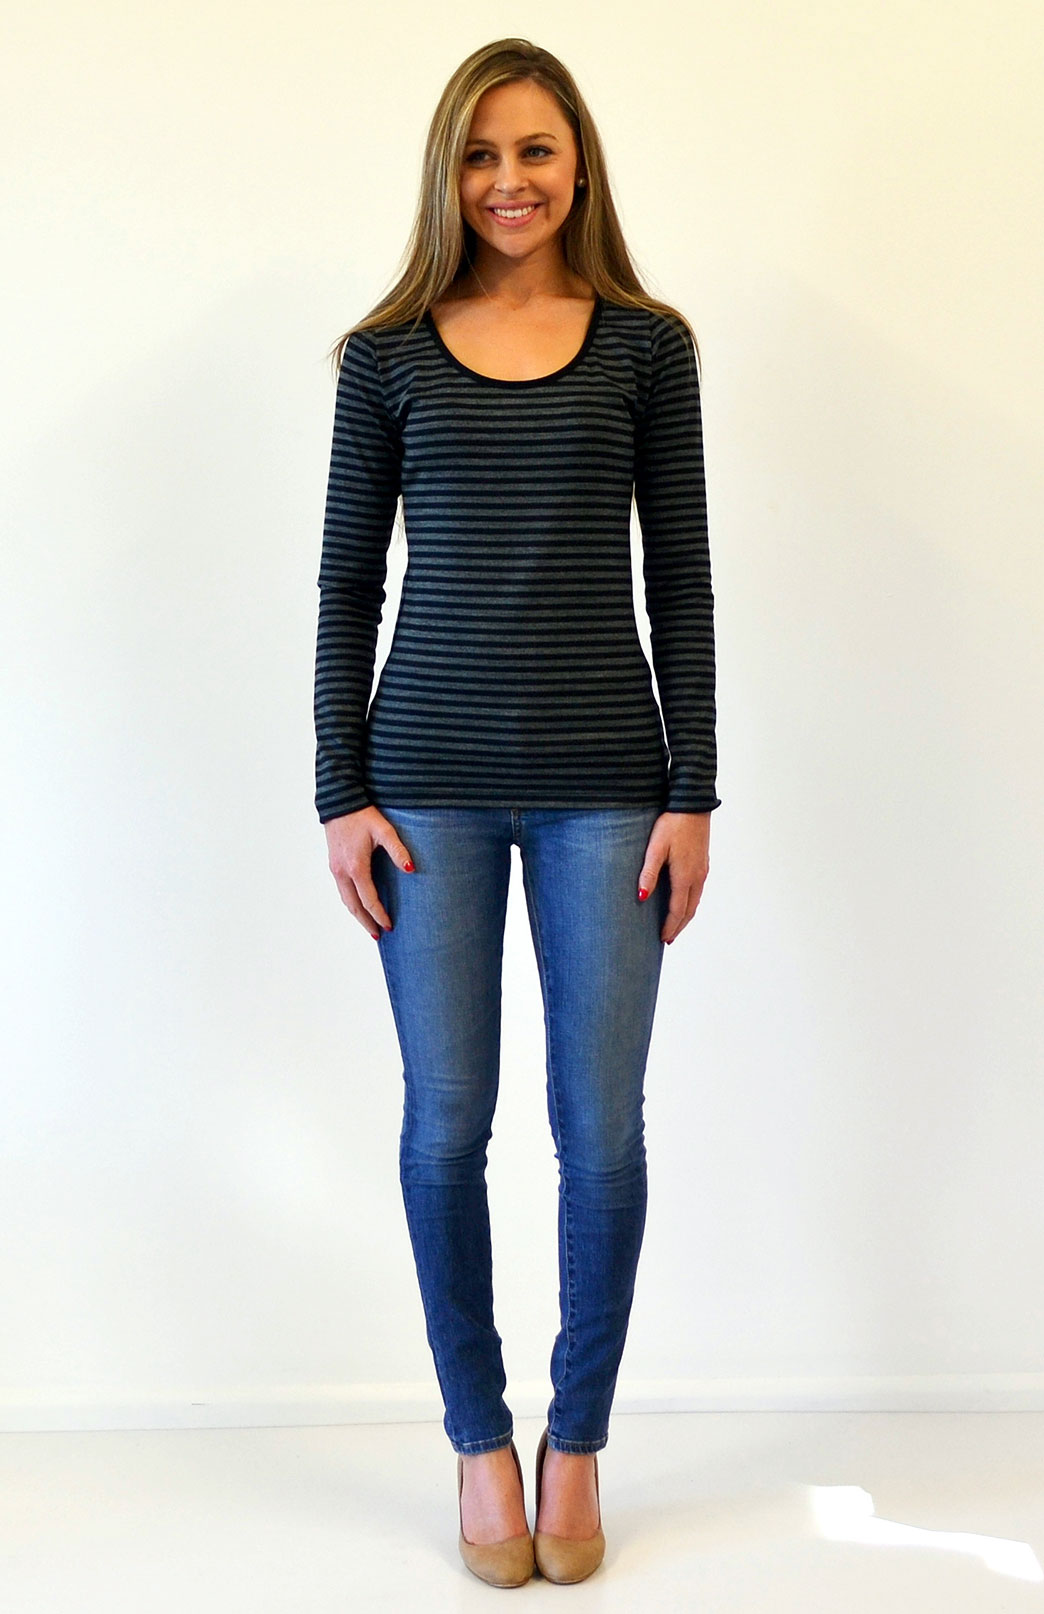 Scoop Neck Top - Patterned - Women's Black and Grey Striped Merino Wool Long Sleeved Thermal Top with Scoop Neckline - Smitten Merino Tasmania Australia